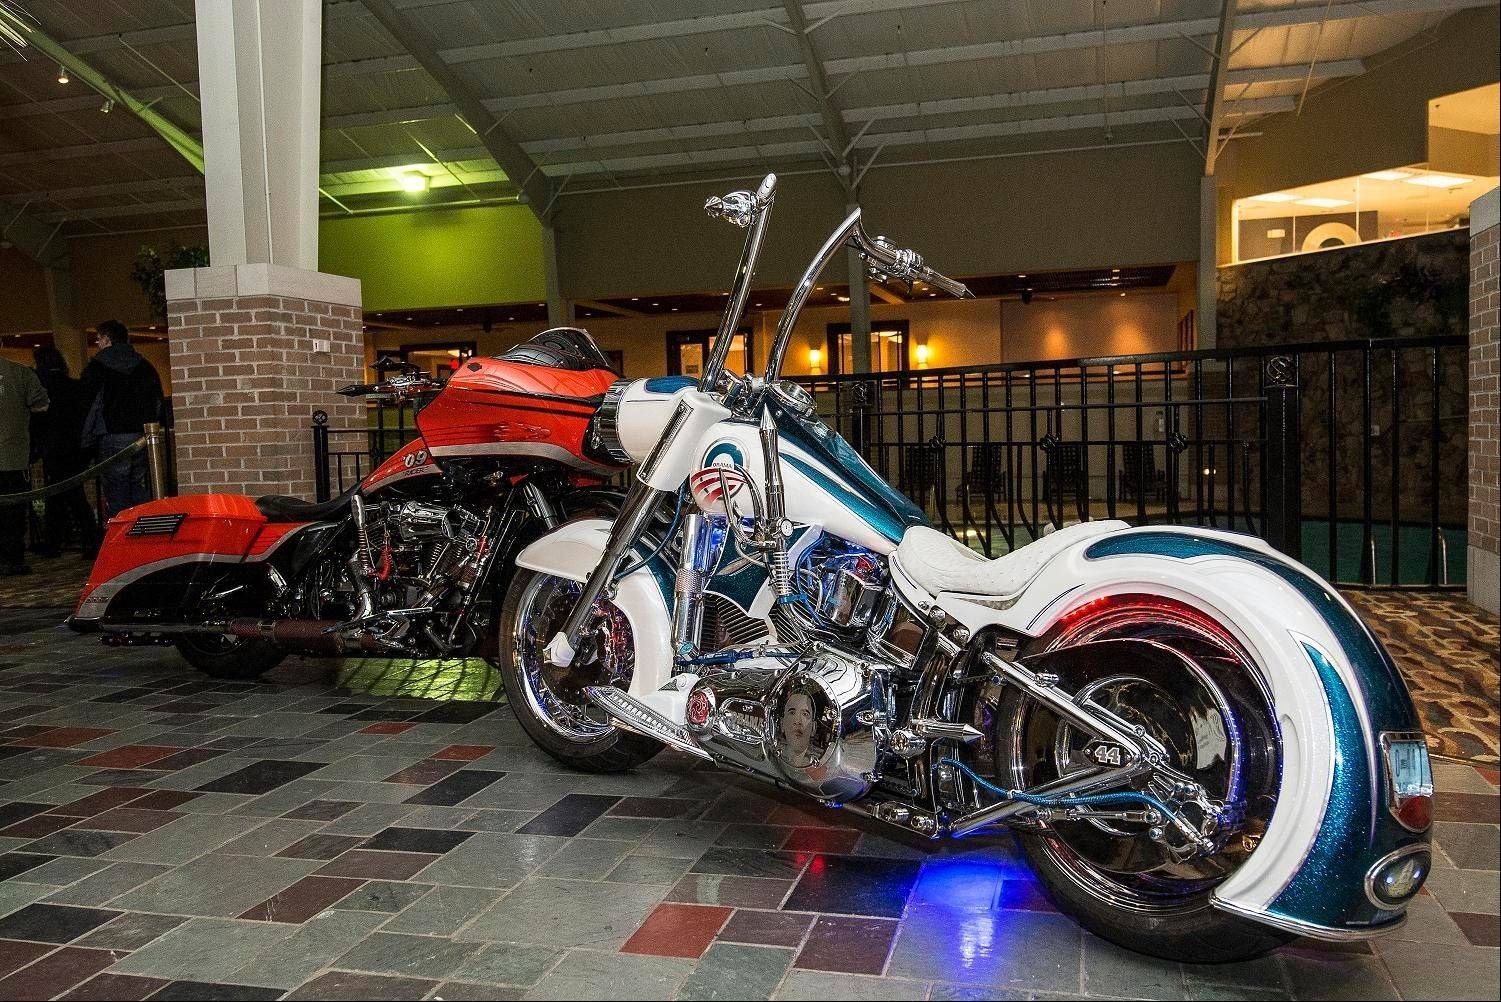 Motorcycles filled the garden atrium and lined the hallways of Pheasant Run Resort and Convention Center in St. Charles during the 2014 Chicago Cycle Show.